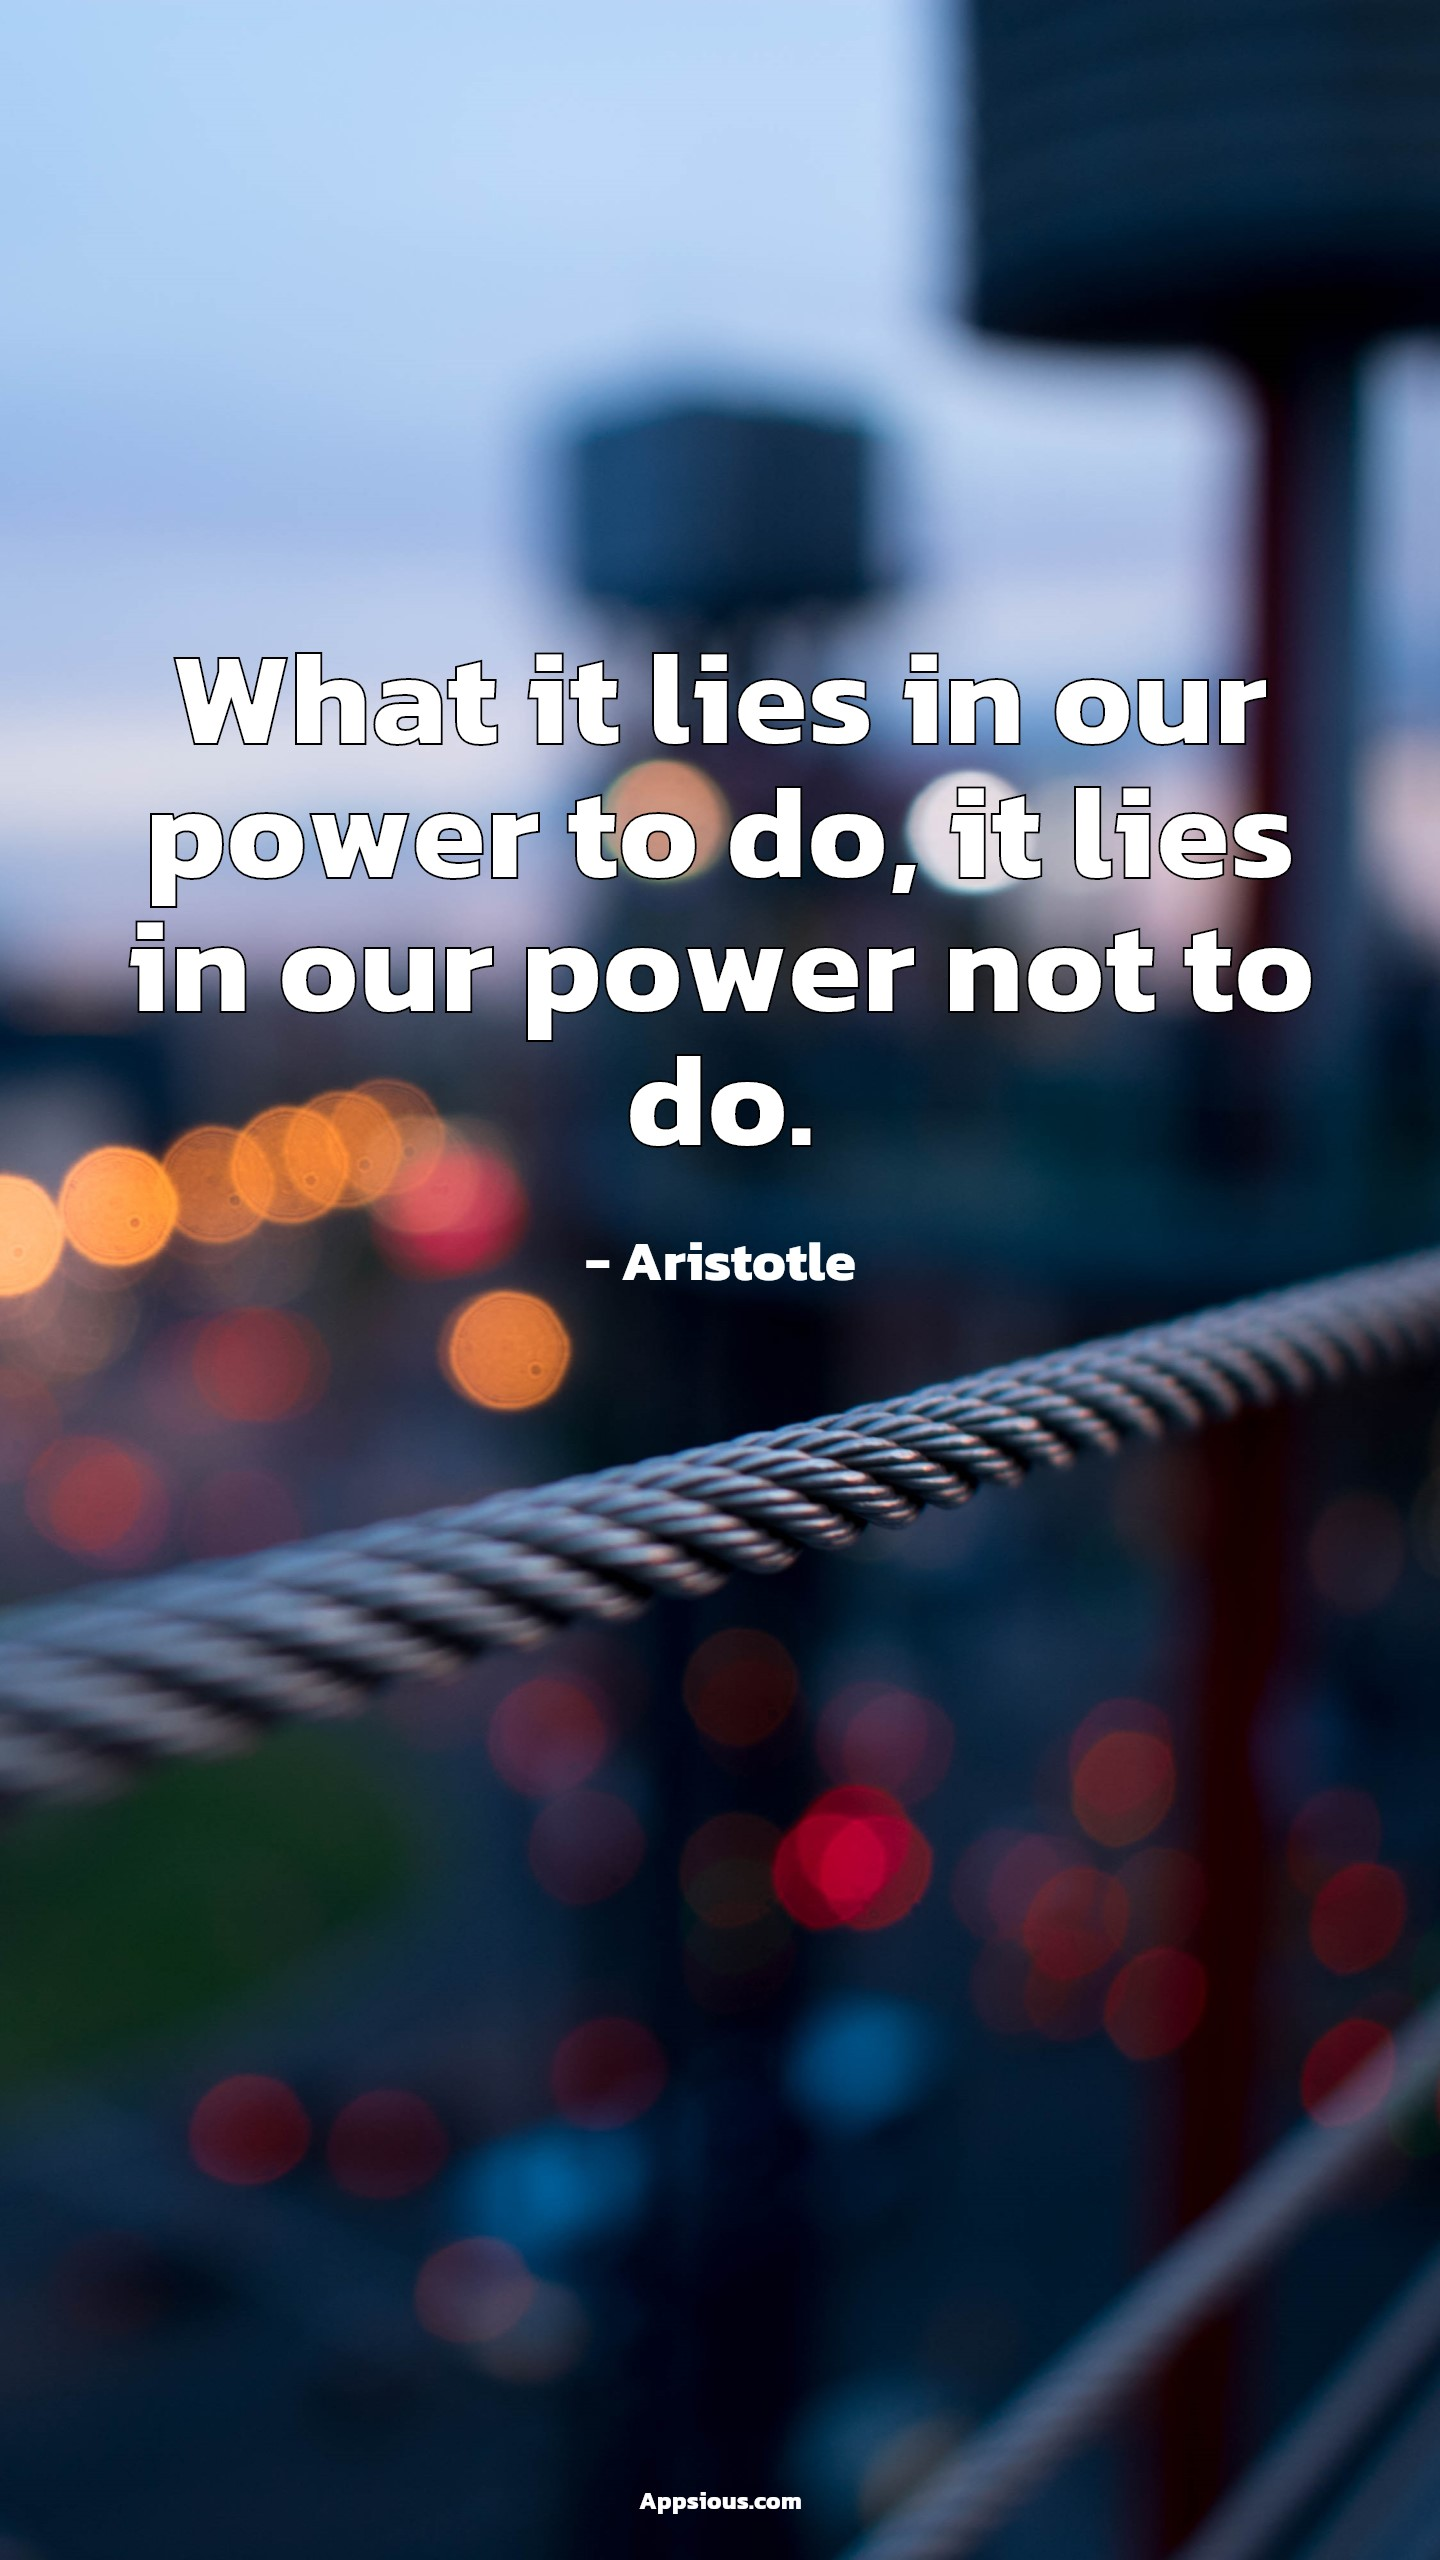 What it lies in our power to do, it lies in our power not to do.